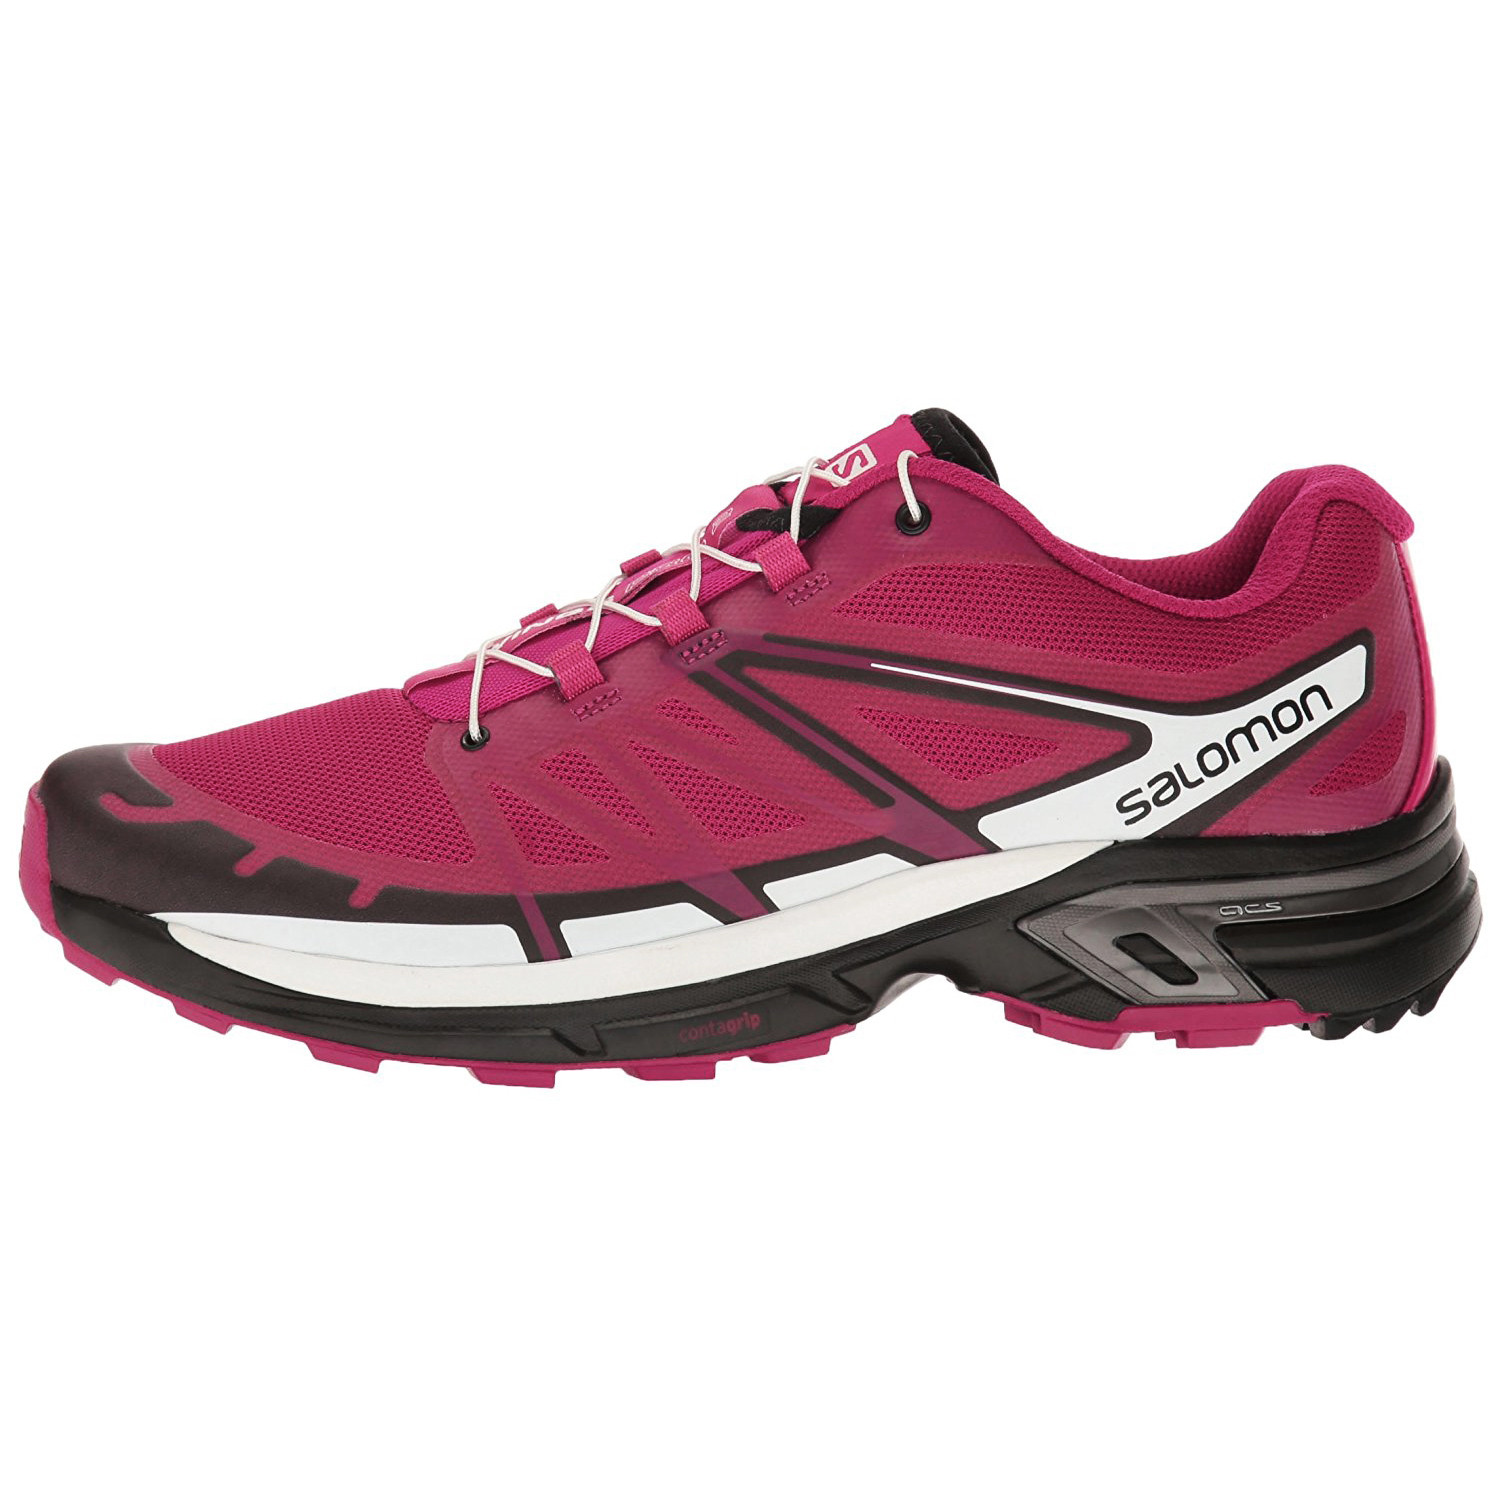 2 Wings Pro Chaussure Femme W Trail awYq5wf